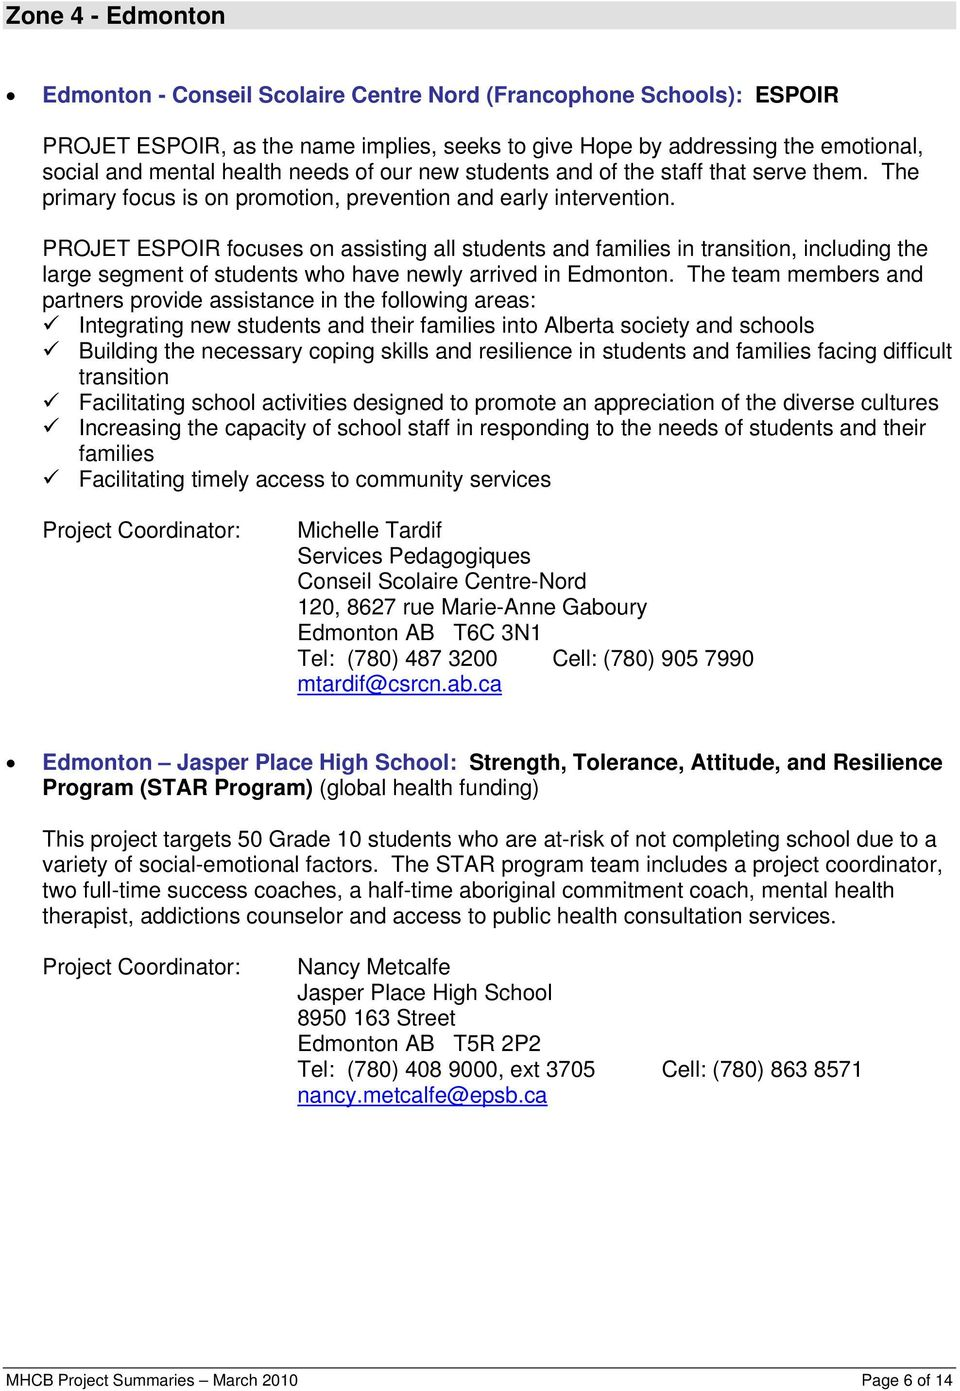 PROJET ESPOIR focuses on assisting all students and families in transition, including the large segment of students who have newly arrived in Edmonton.